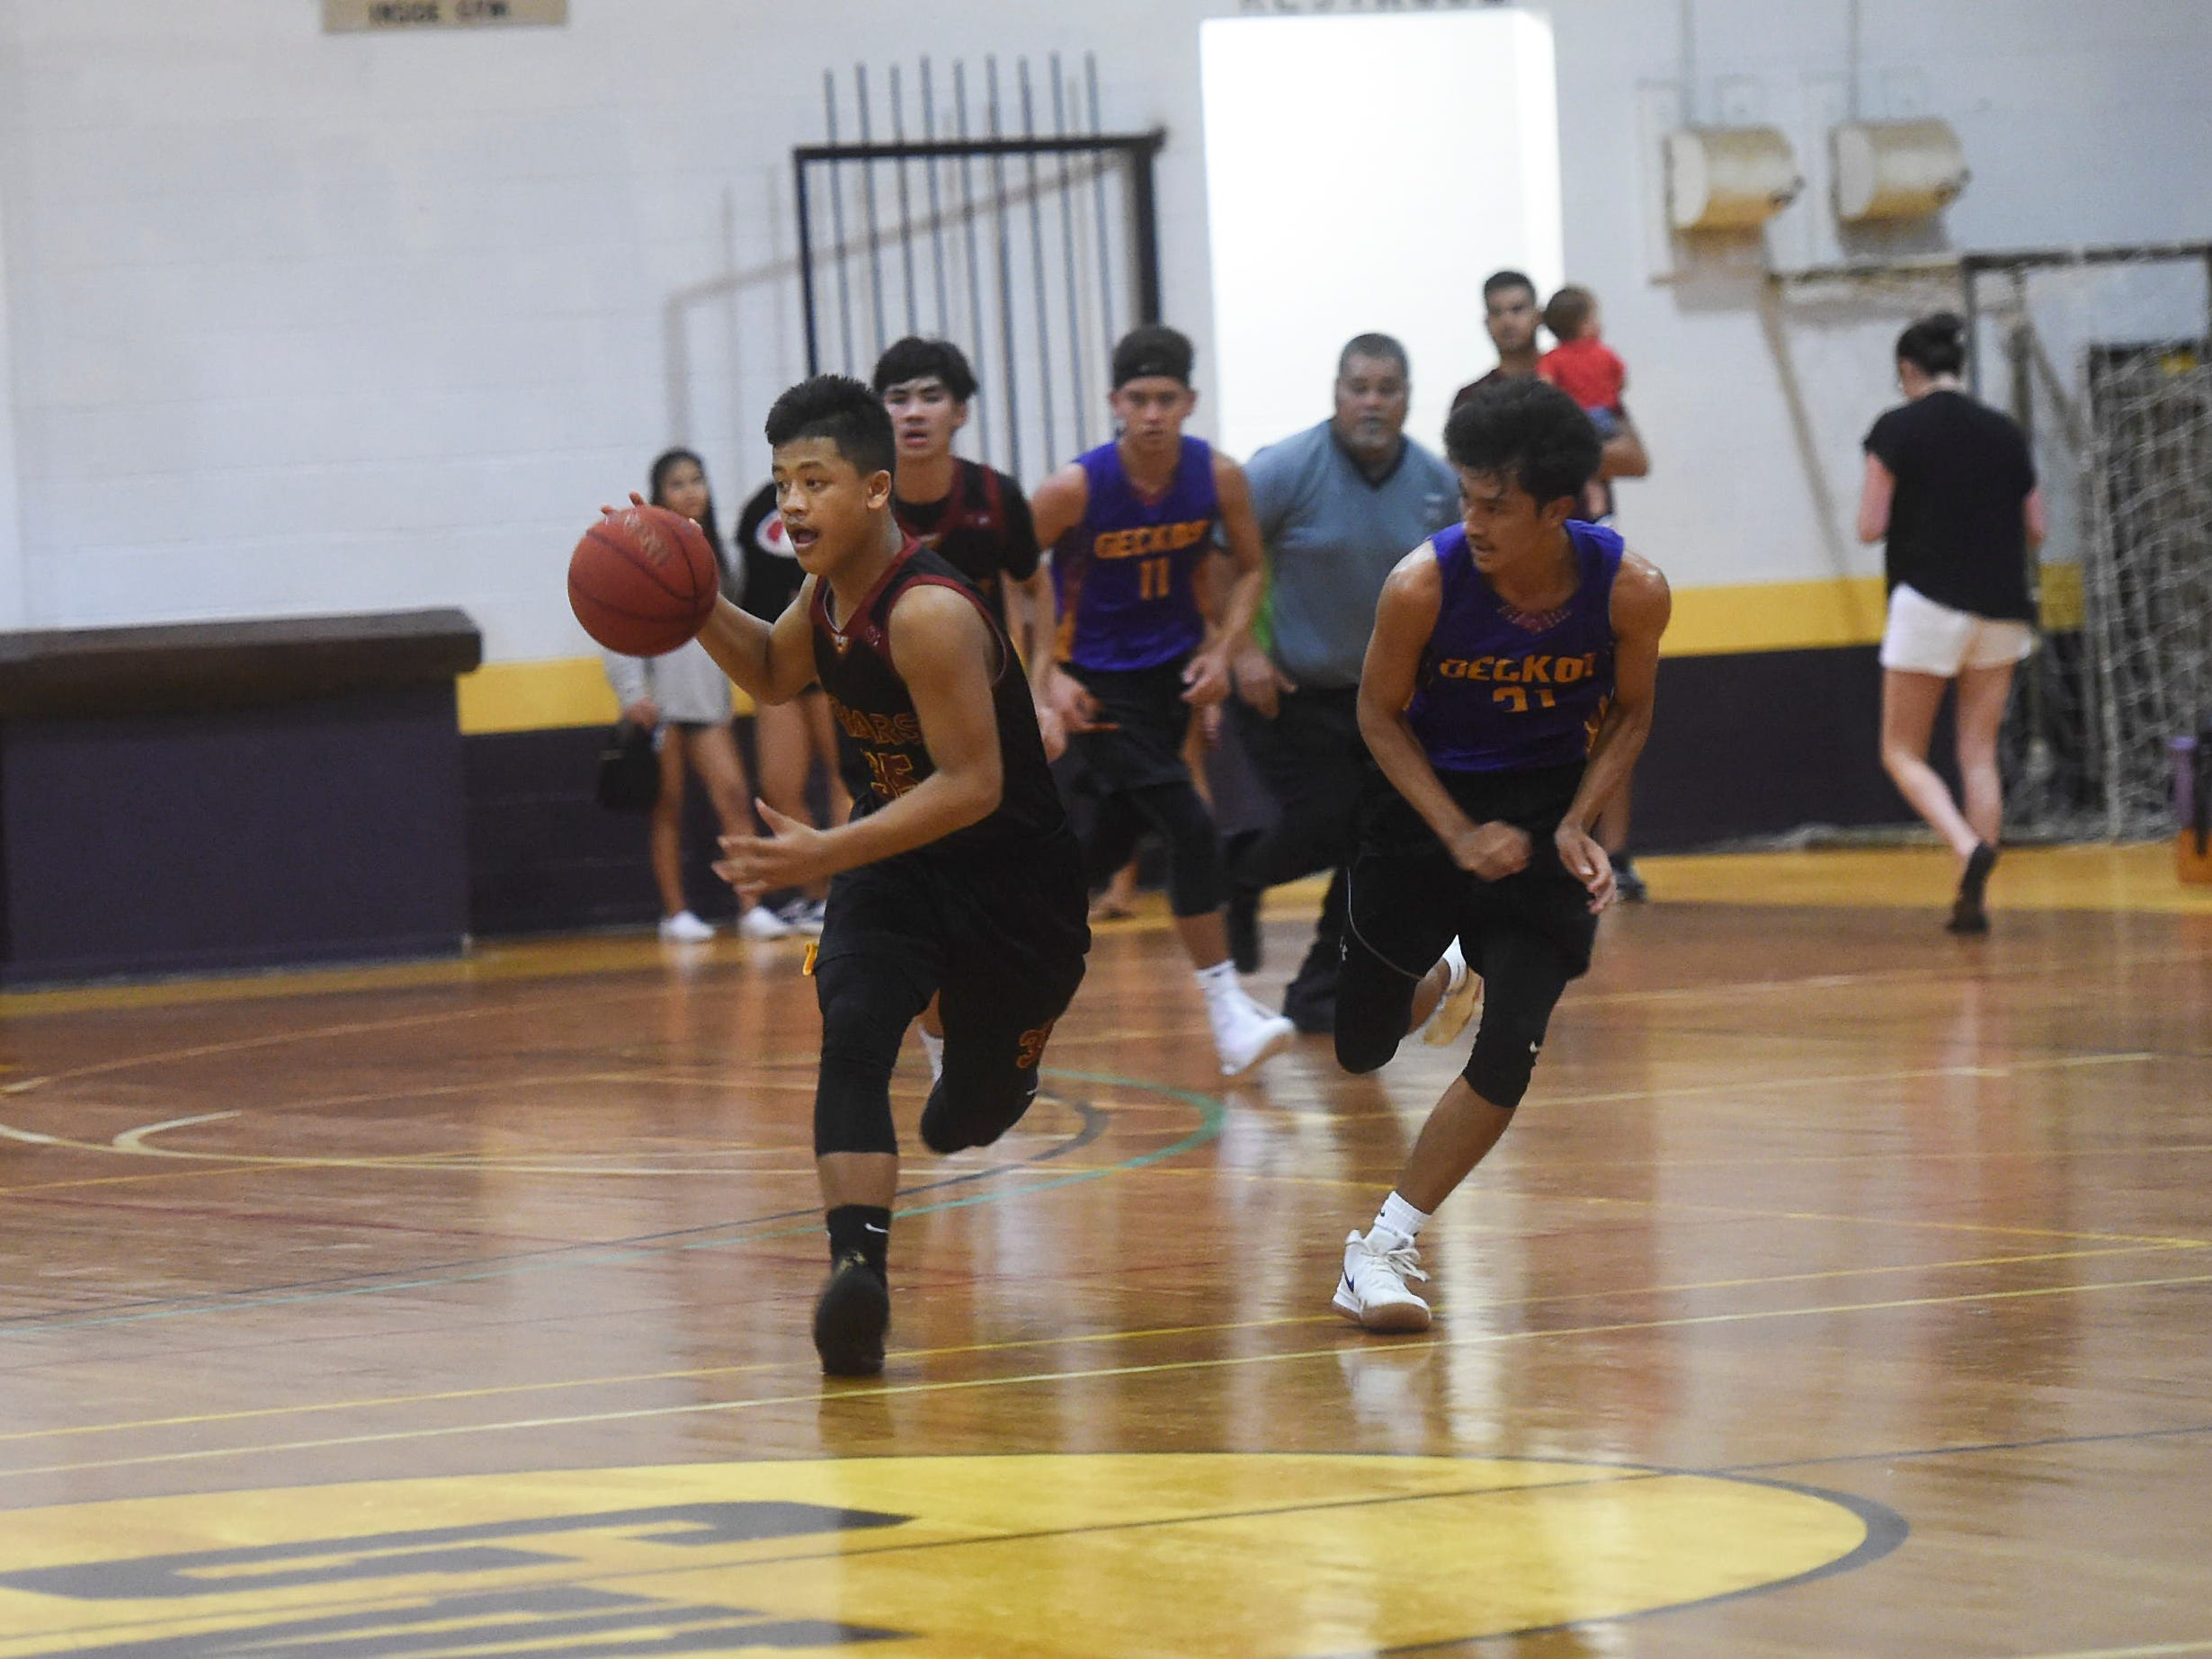 Father Duenas' Elijah Garrido handles the ball on a fast break against the George Washington Geckos during their Independent Interscholastic Athletic Association of Guam Boys' Basketball game at the GW High School gym, Jan. 19, 2019. The Friars came through with a 52-69 comeback victory over the Geckos after trailing in the first half.